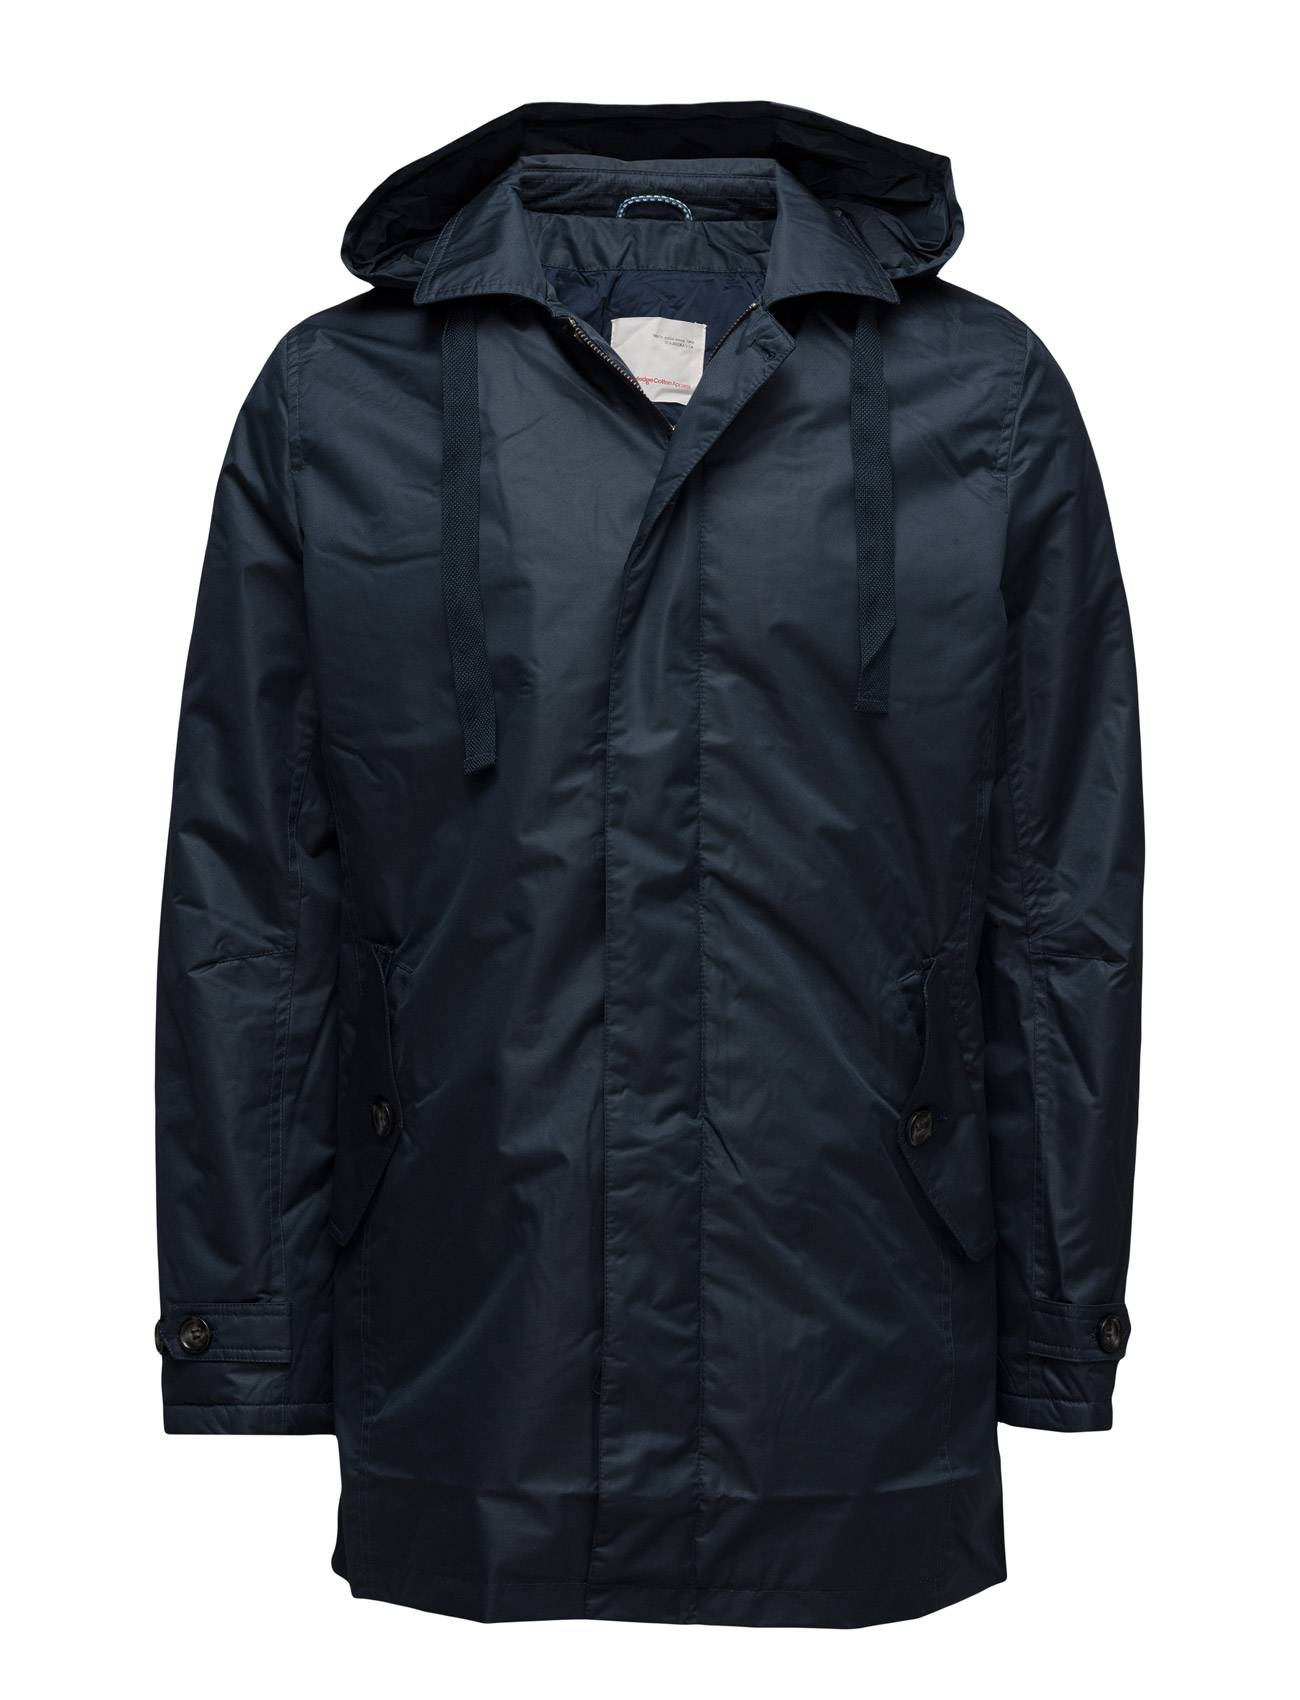 Knowledge Cotton Apparel Funtional Parca W/Quilted Lining